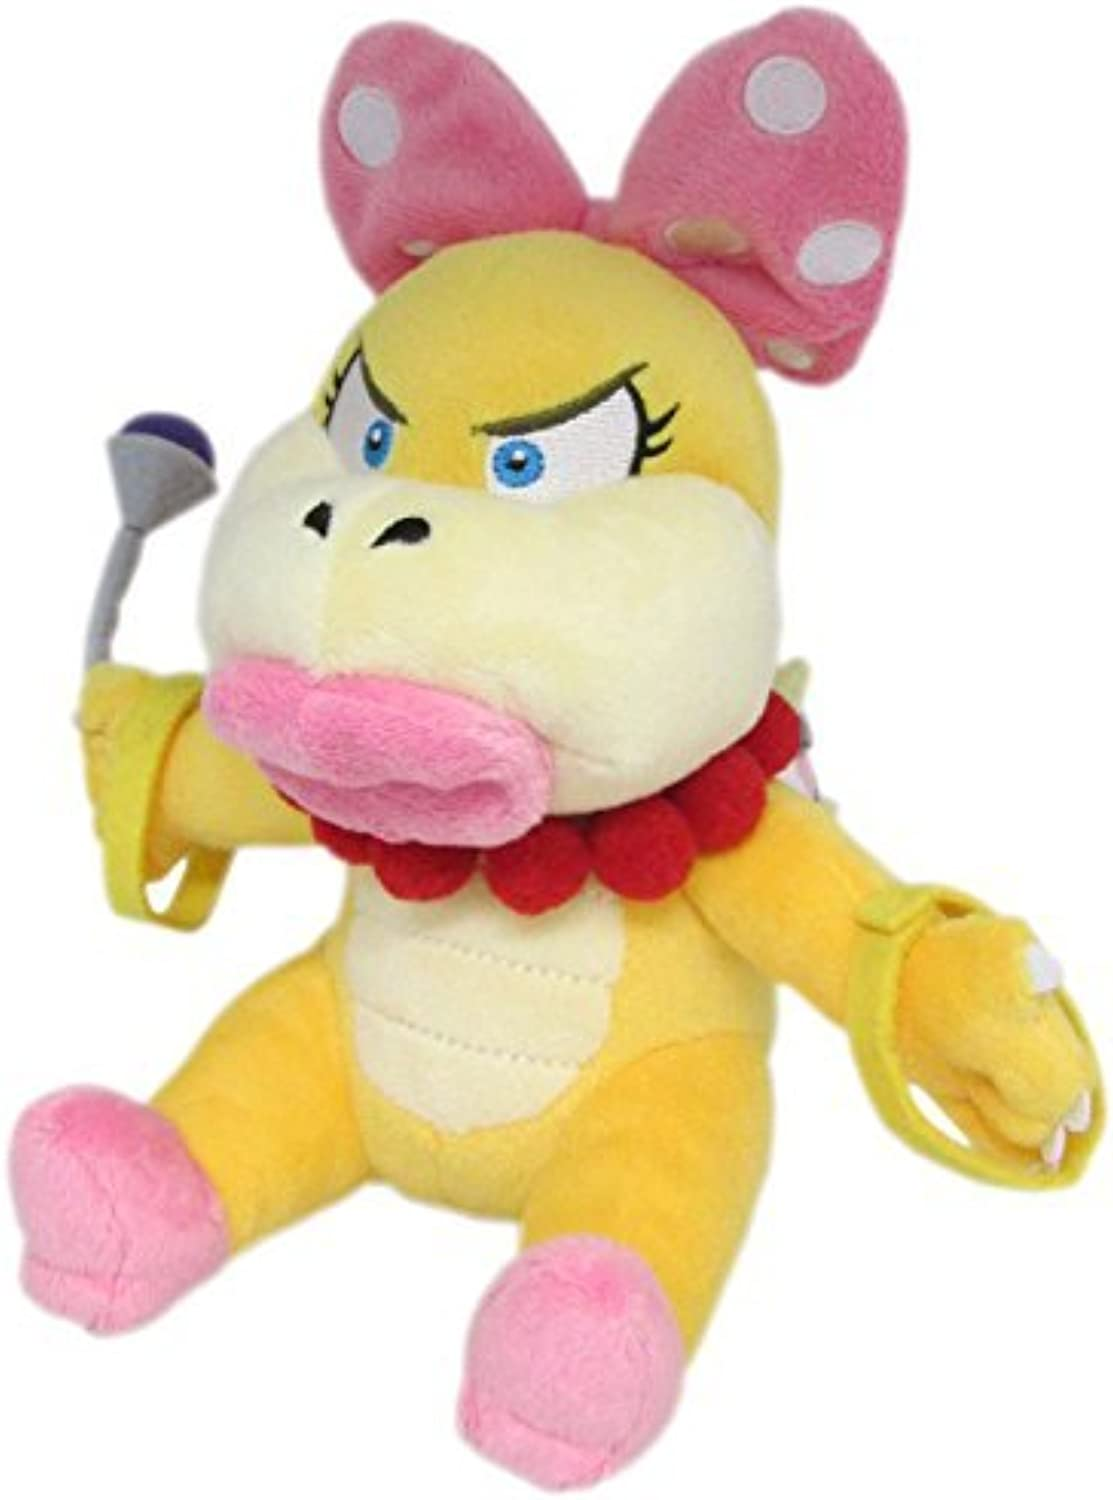 Little Buddy Super Mario Series Wendy Koopa 7  Plush by Super Mario Bros.